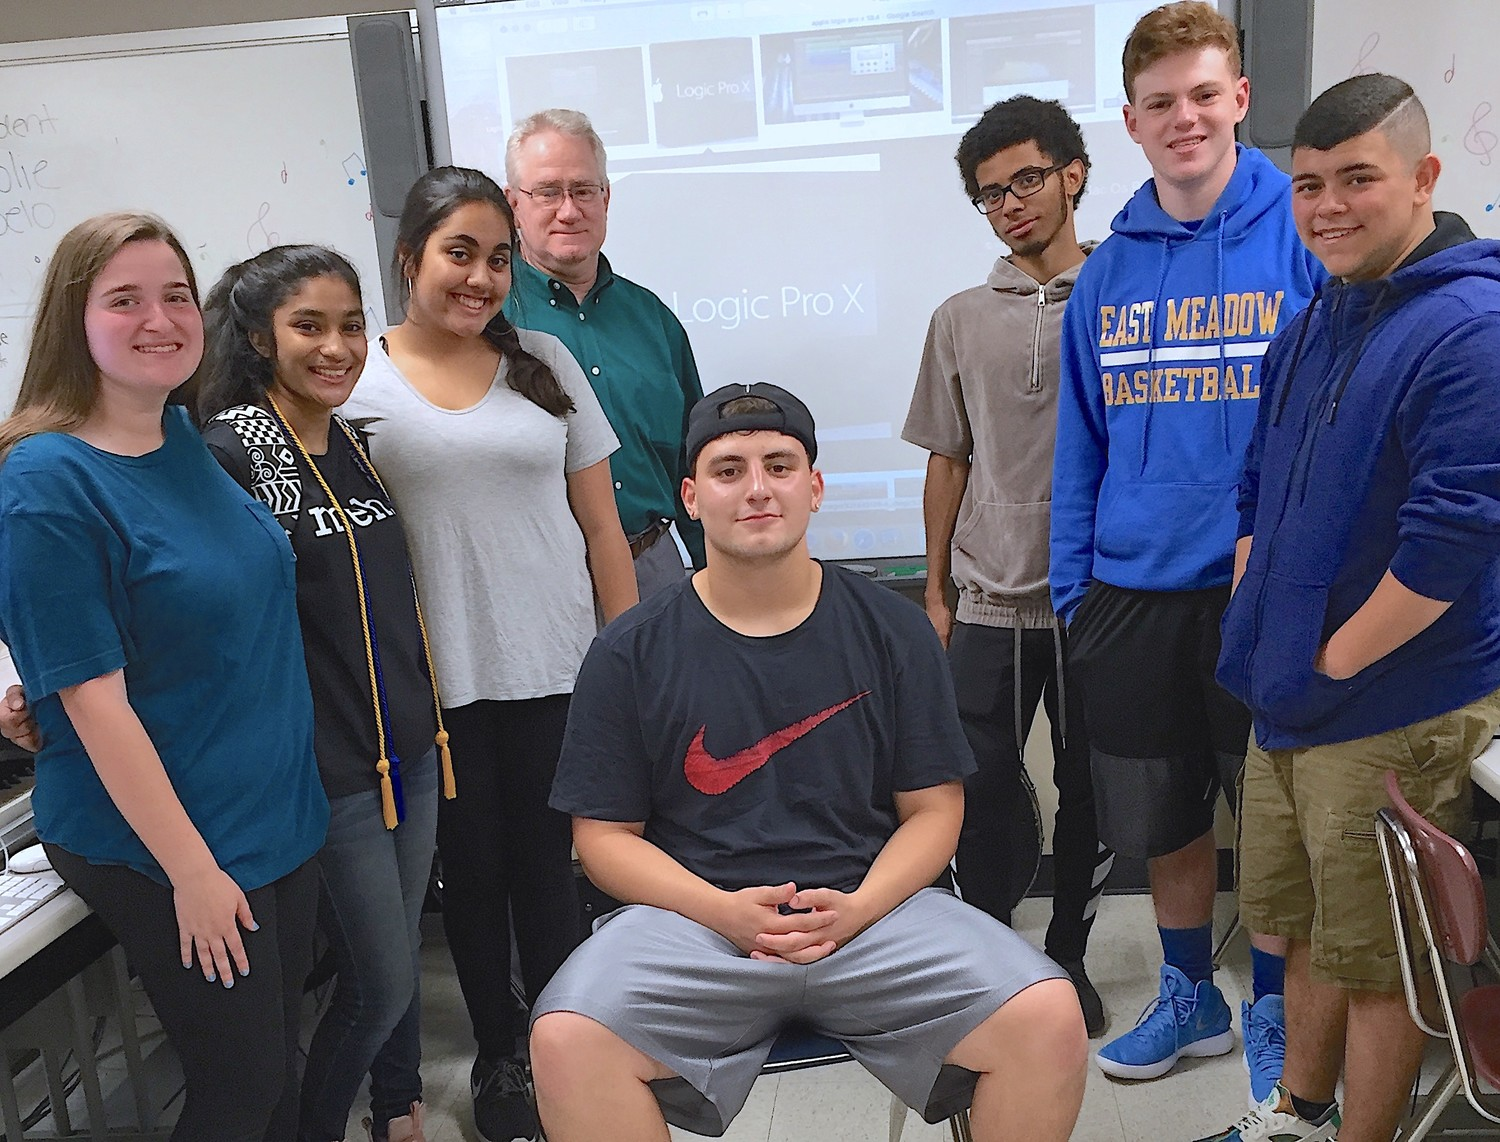 Jessica Rudolph, left, Mehrin Ali, Zahra Lakhani, Domenic Pashalian, Adam Reyes, Evan Haber and Wilmer Mejia, all students at East Meadow High School, earned Apple Logic Pro X certifications this past May. Above they are with their teacher Bill Kinslow.